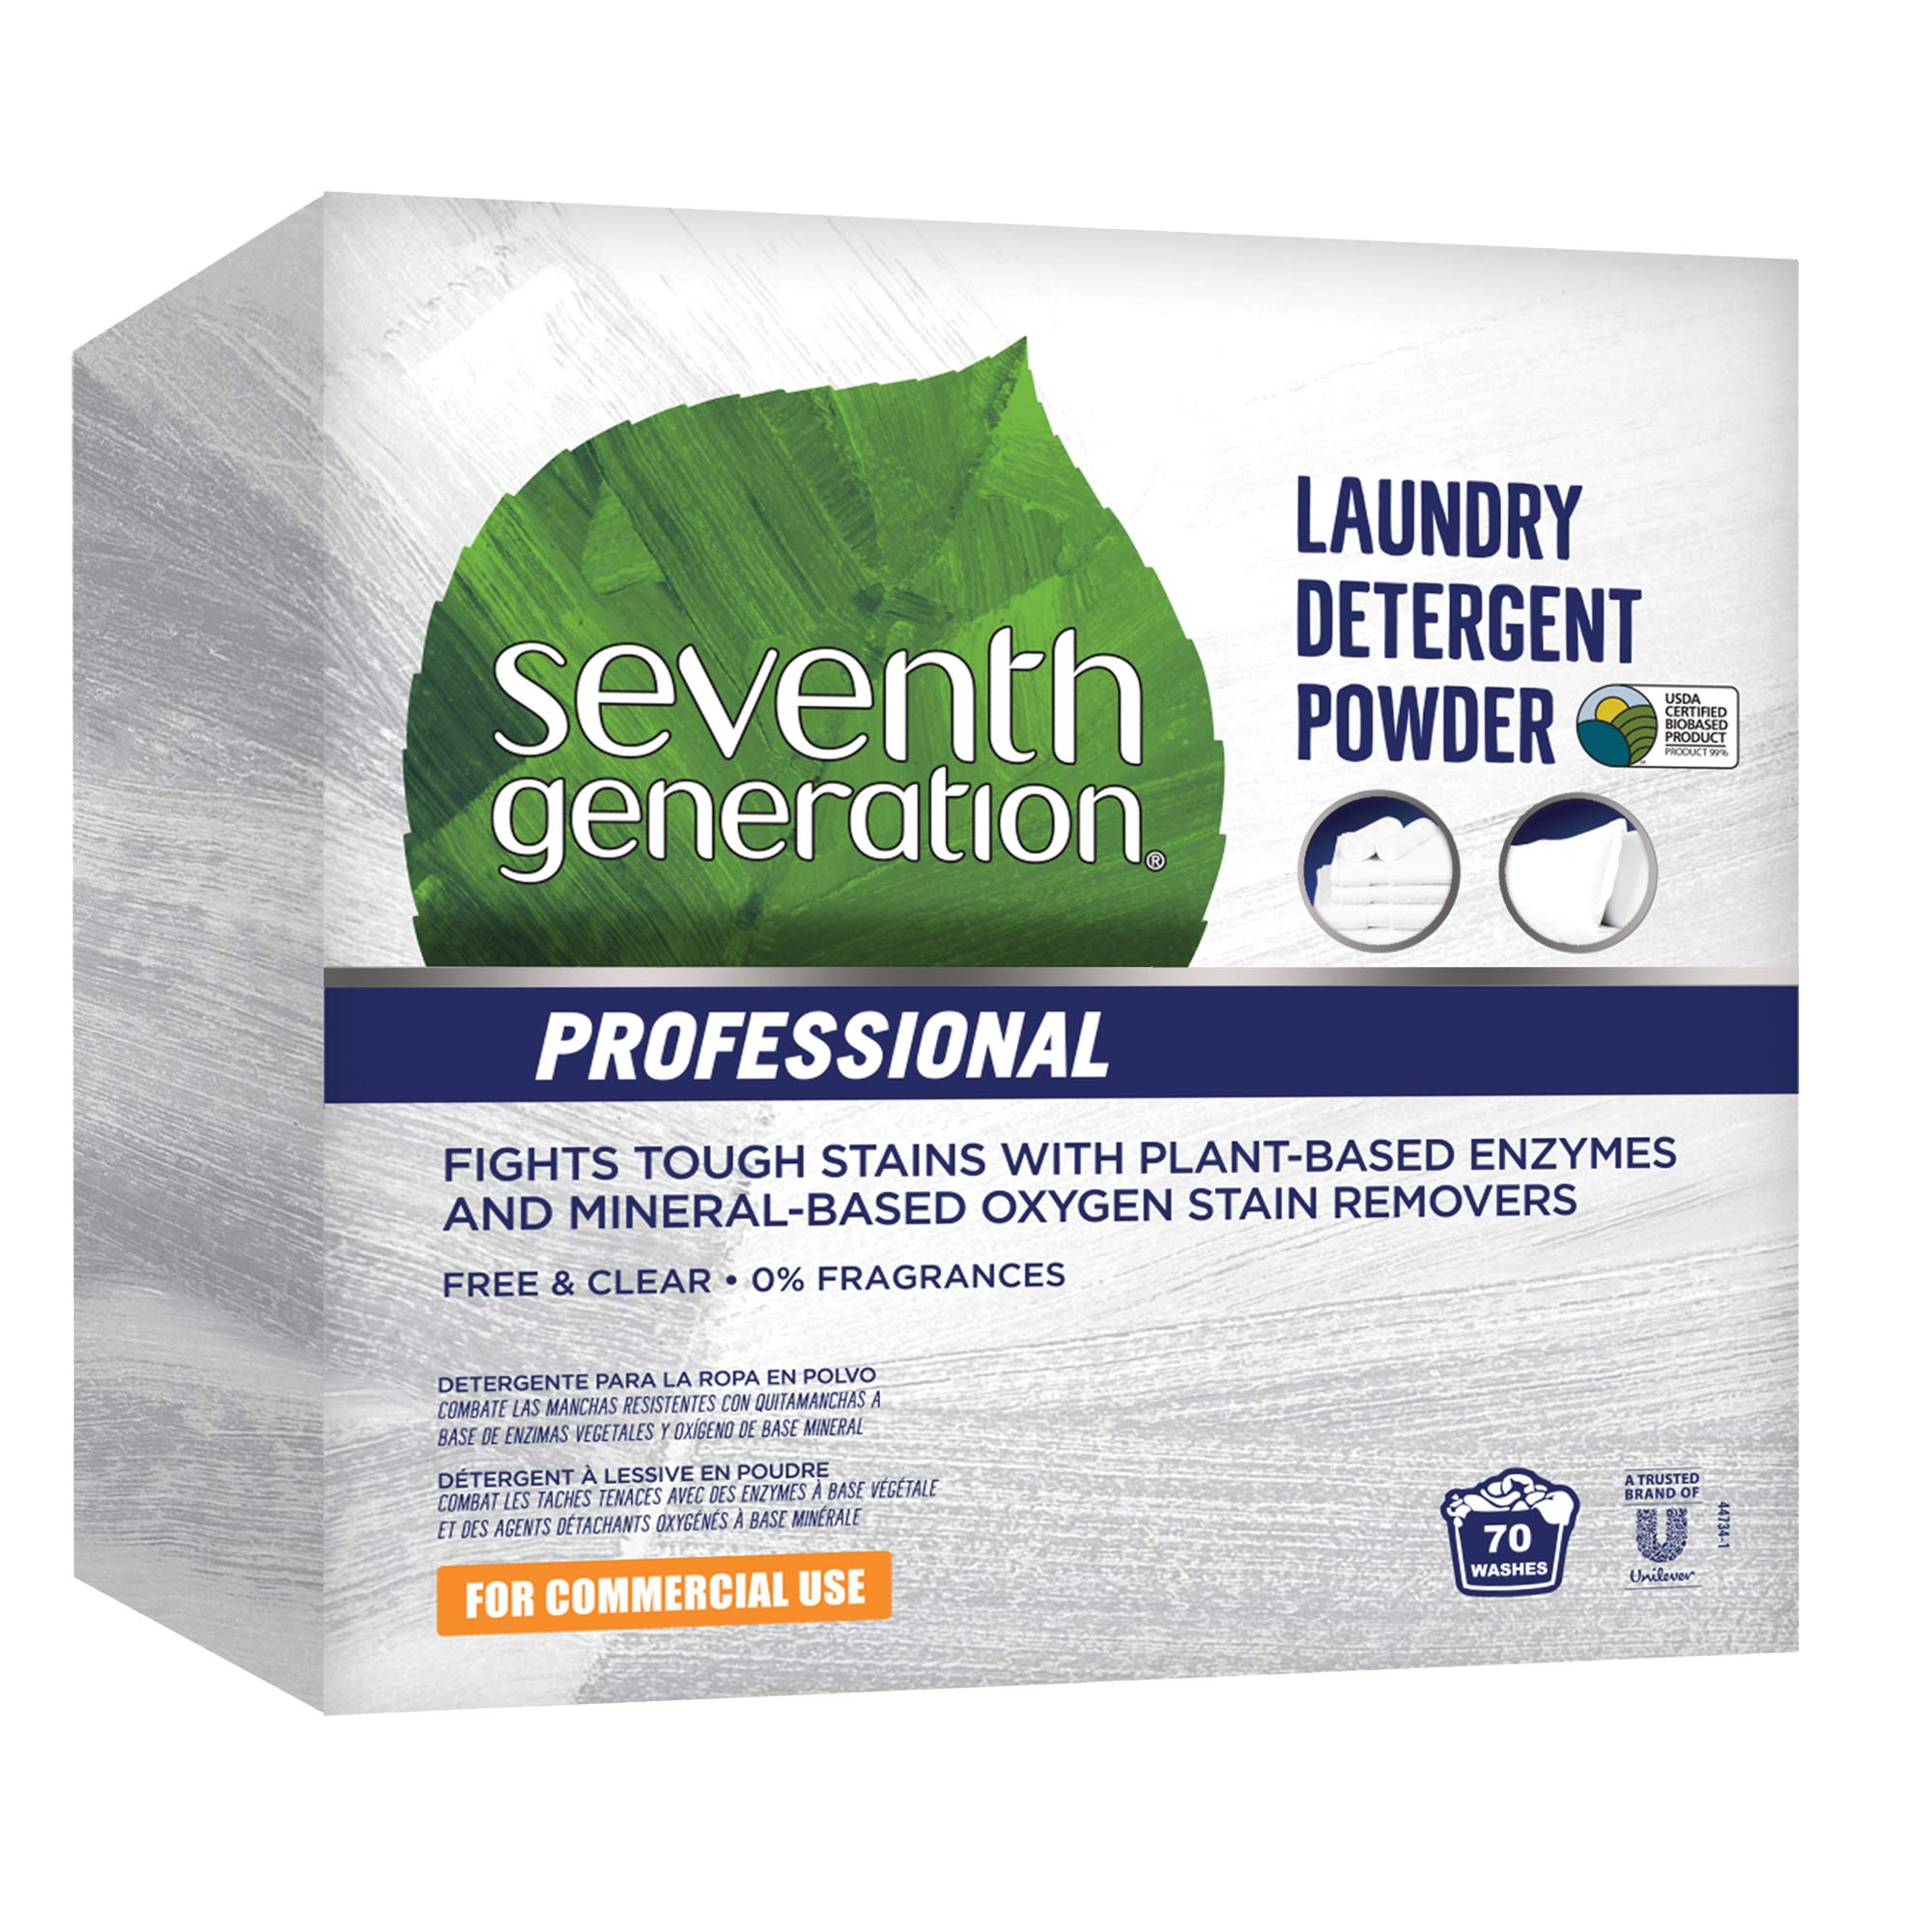 Seventh Generation Professional Laundry Detergent Powder, Free & Clear, Unscented, 112 oz (Pack of 4)